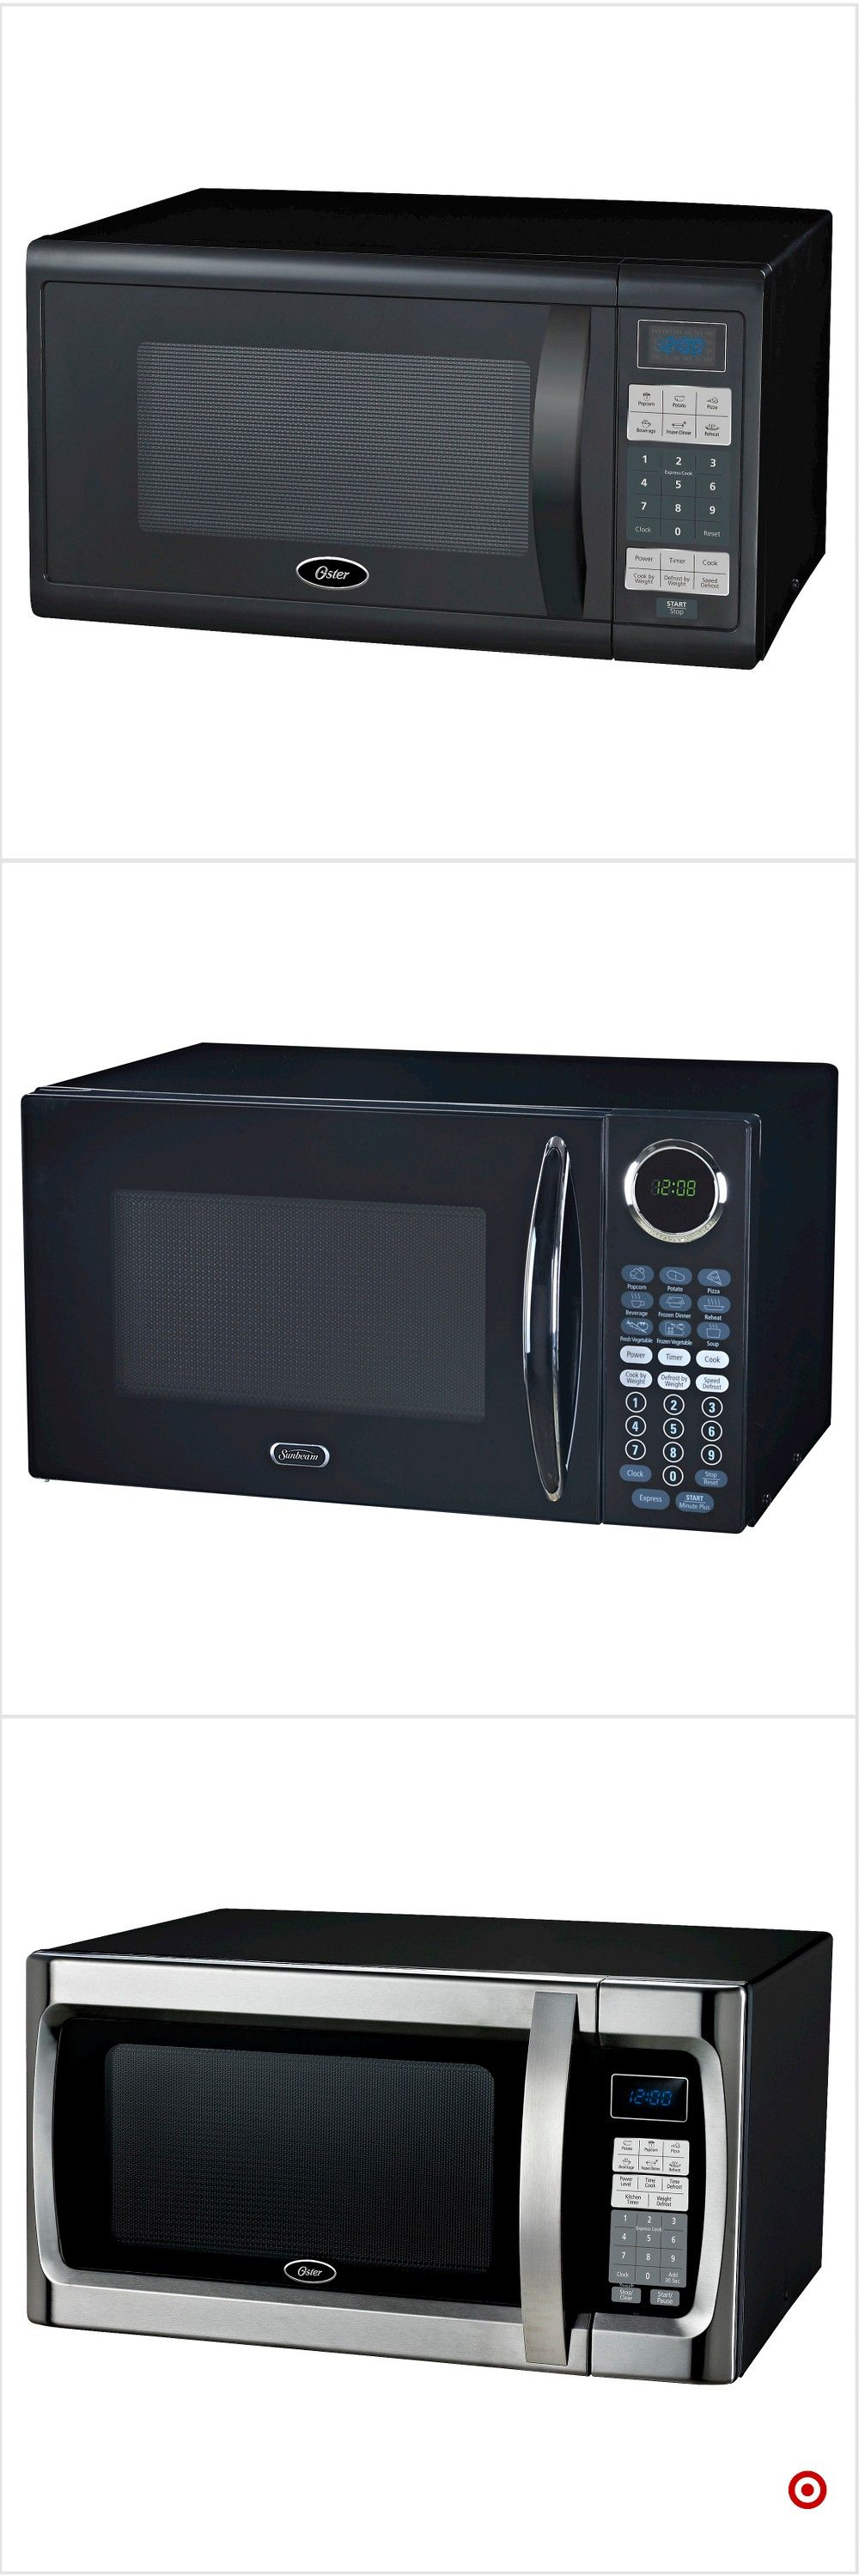 Shop Target For Microwave Ovens You Will Love At Great Low Prices Free Shipping On Orders Of 35 Or Free Same D Countertop Oven Kitchen Utilities Shop Target